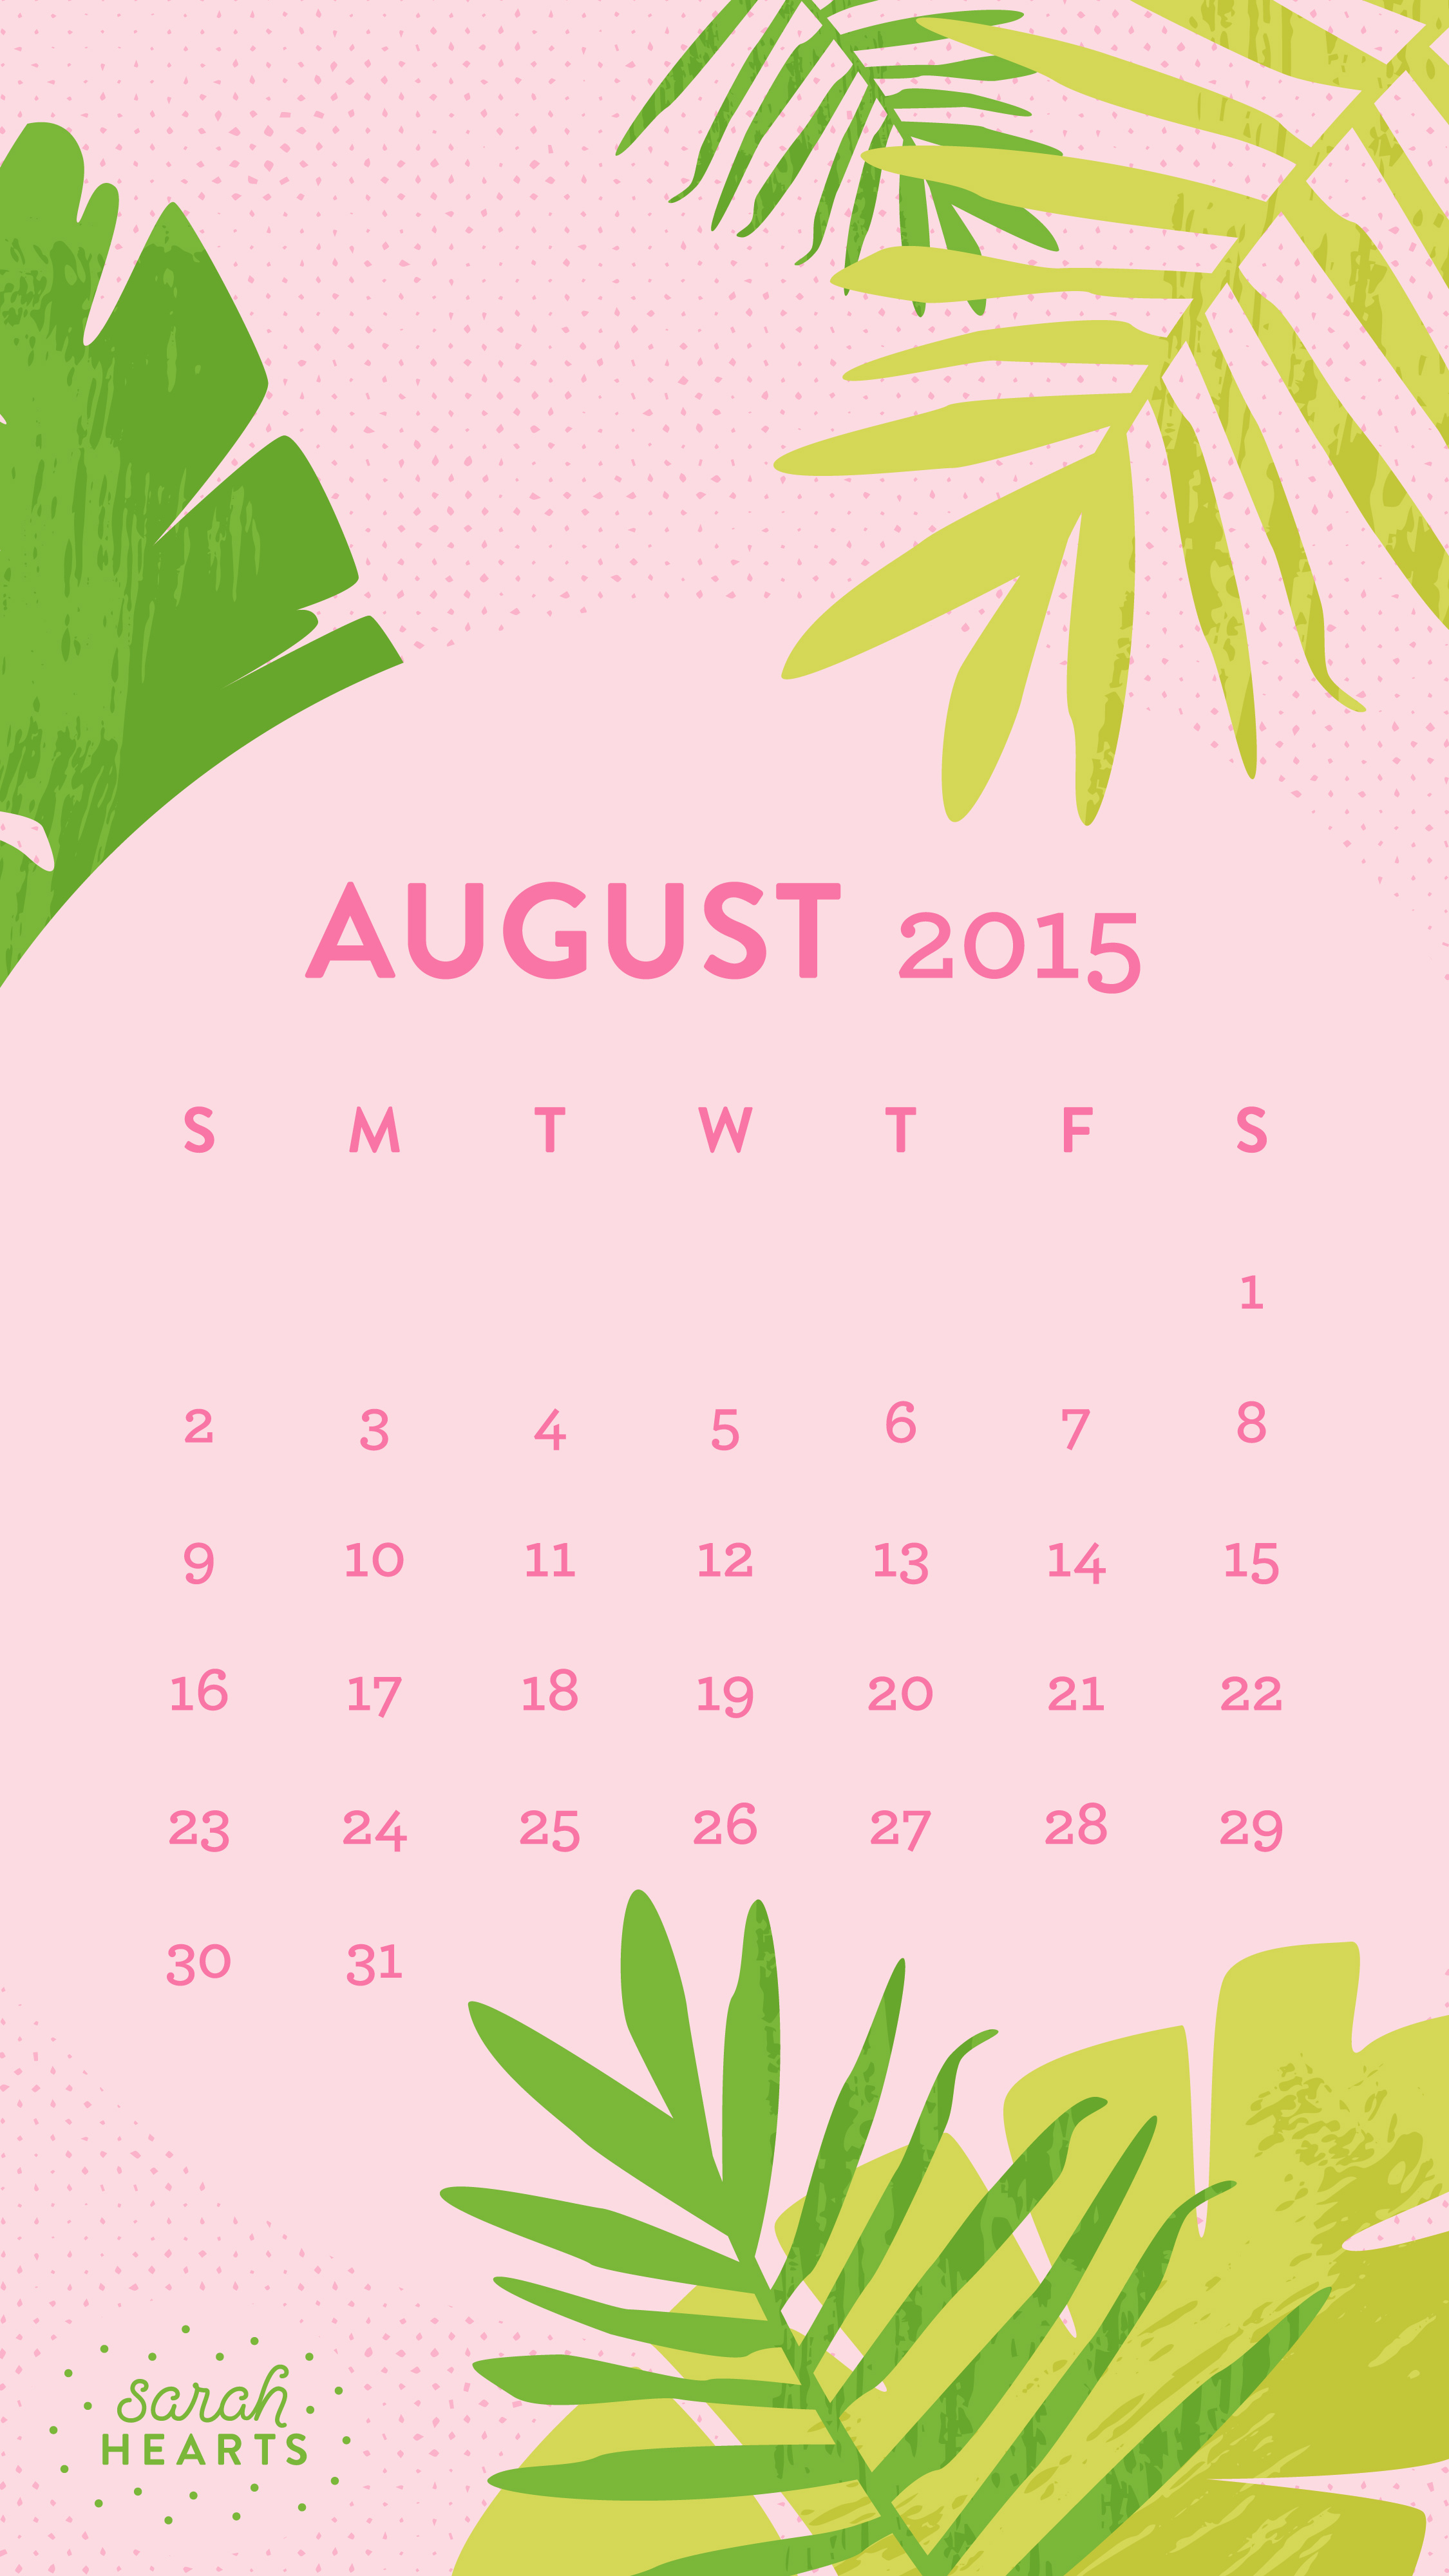 August 2015 Calendar Wallpaper   Sarah Hearts 2250x4000